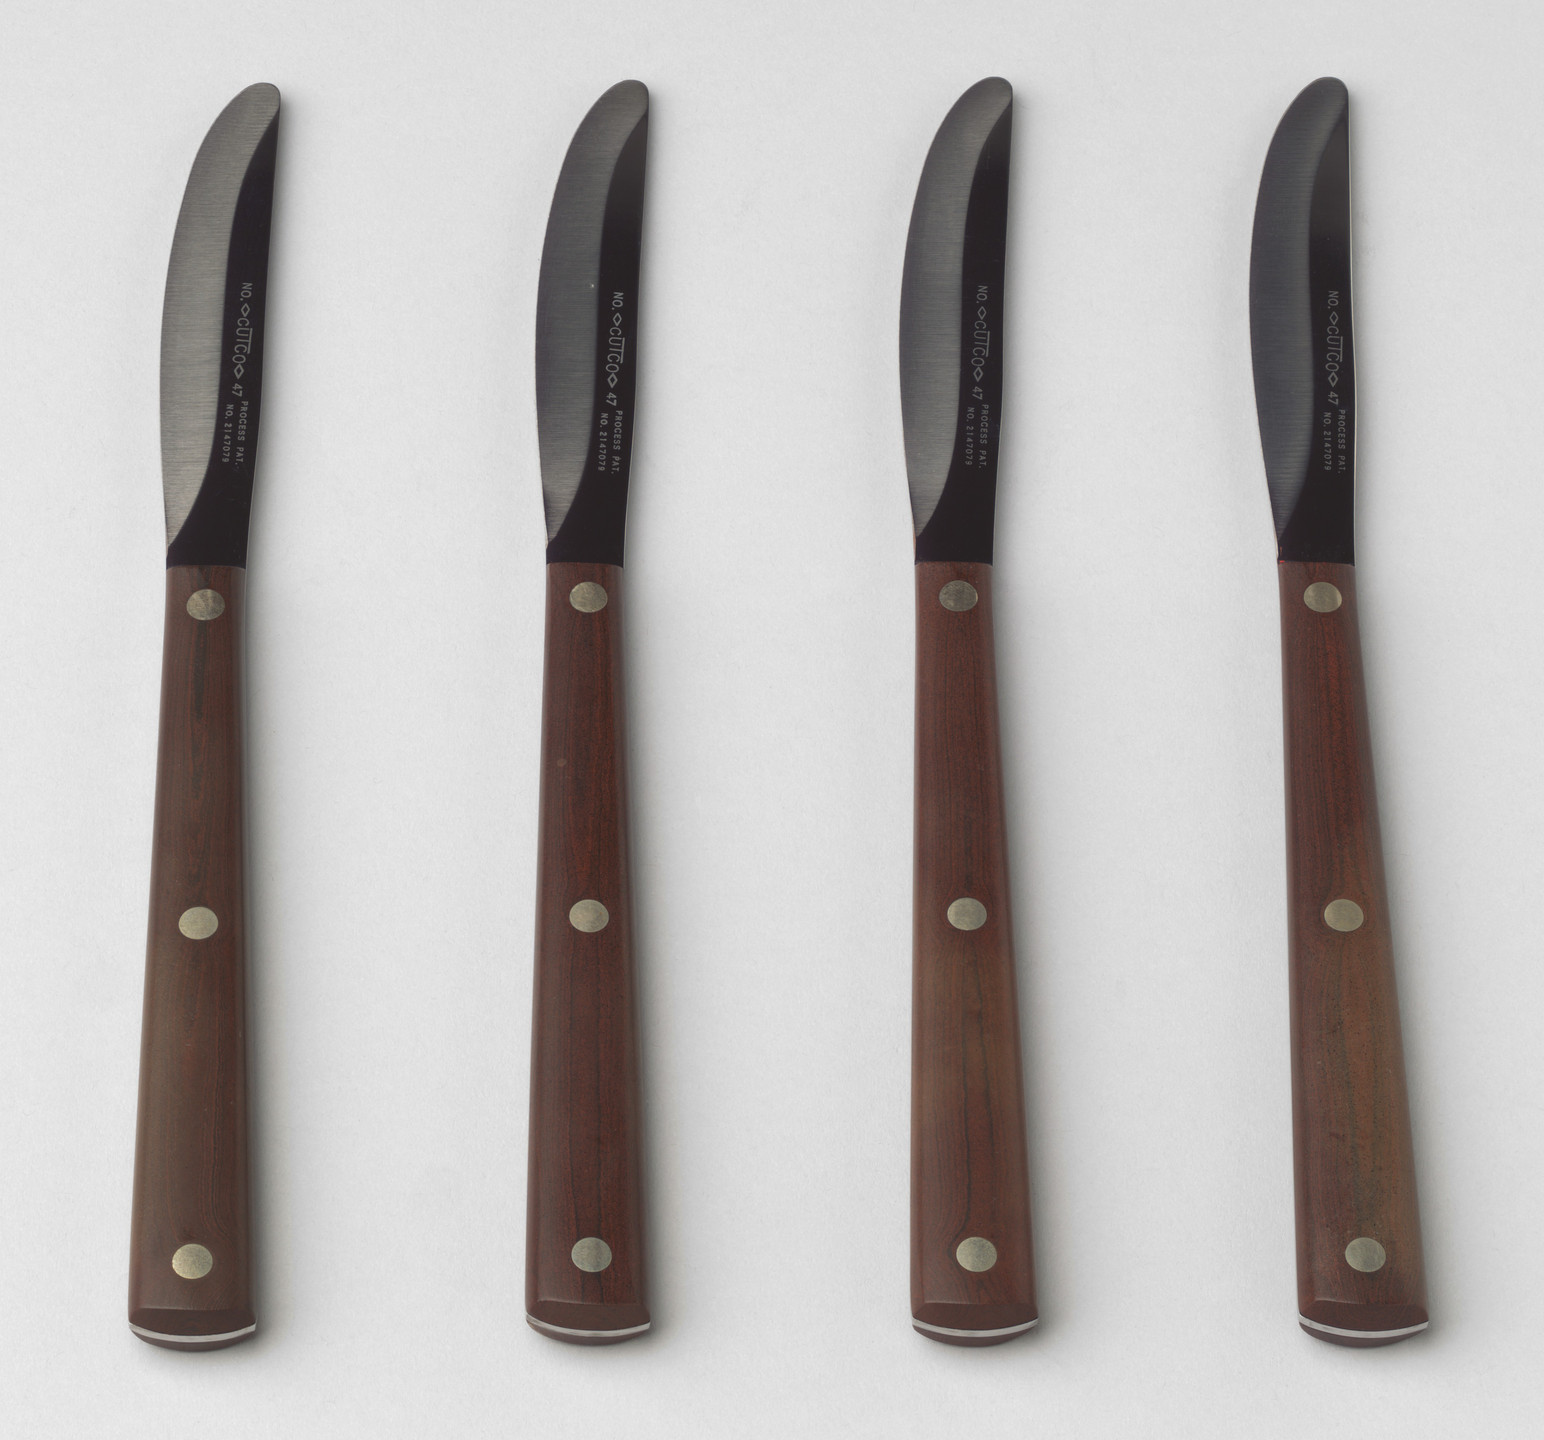 The Aluminum Cooking Utensil Co., New York, NY. Steak Knives. Unknown